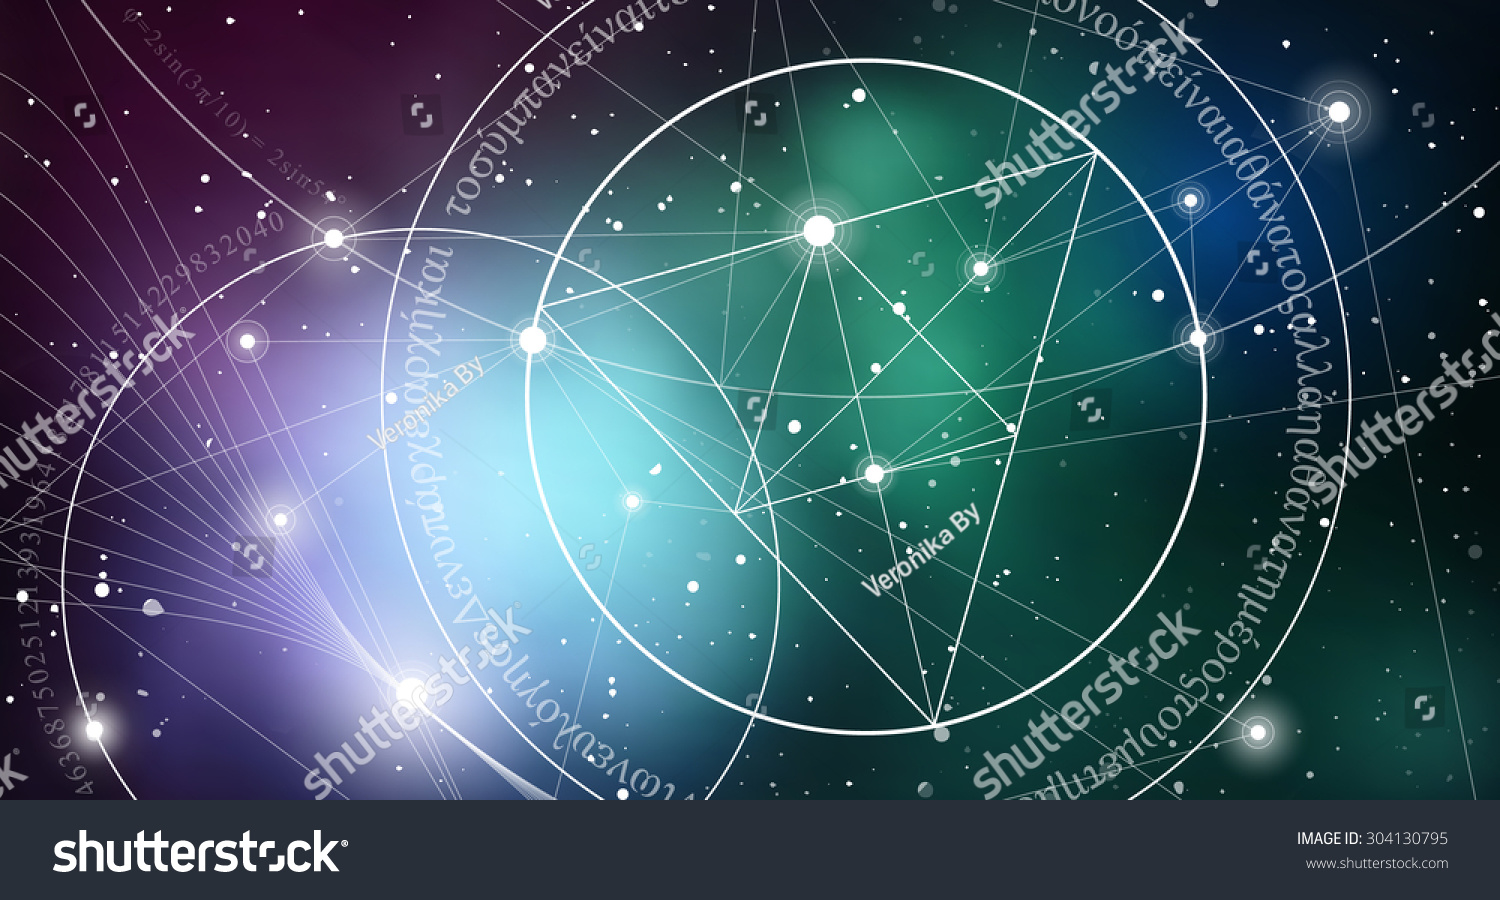 Mathematical symbols digits space formula nature stock vector mathematical symbols and digits in space the formula of nature greek letters there biocorpaavc